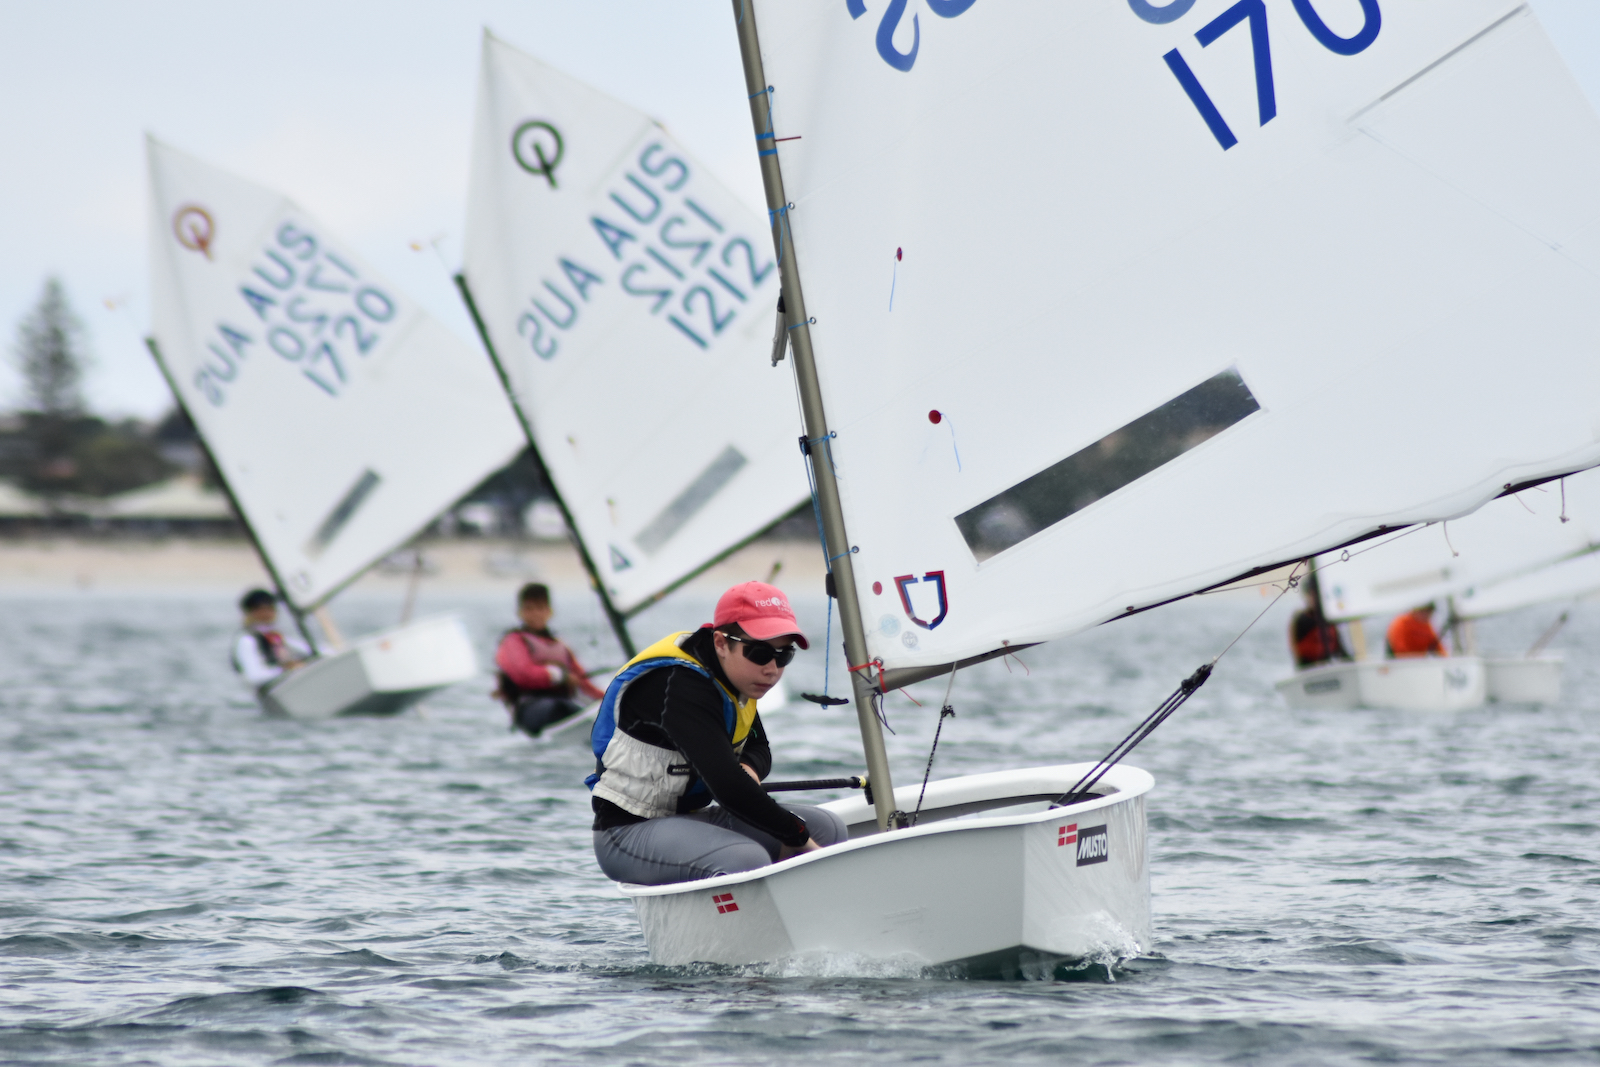 71-boat fleet hits Goolwa for SA Optimist Frostbite Regatta